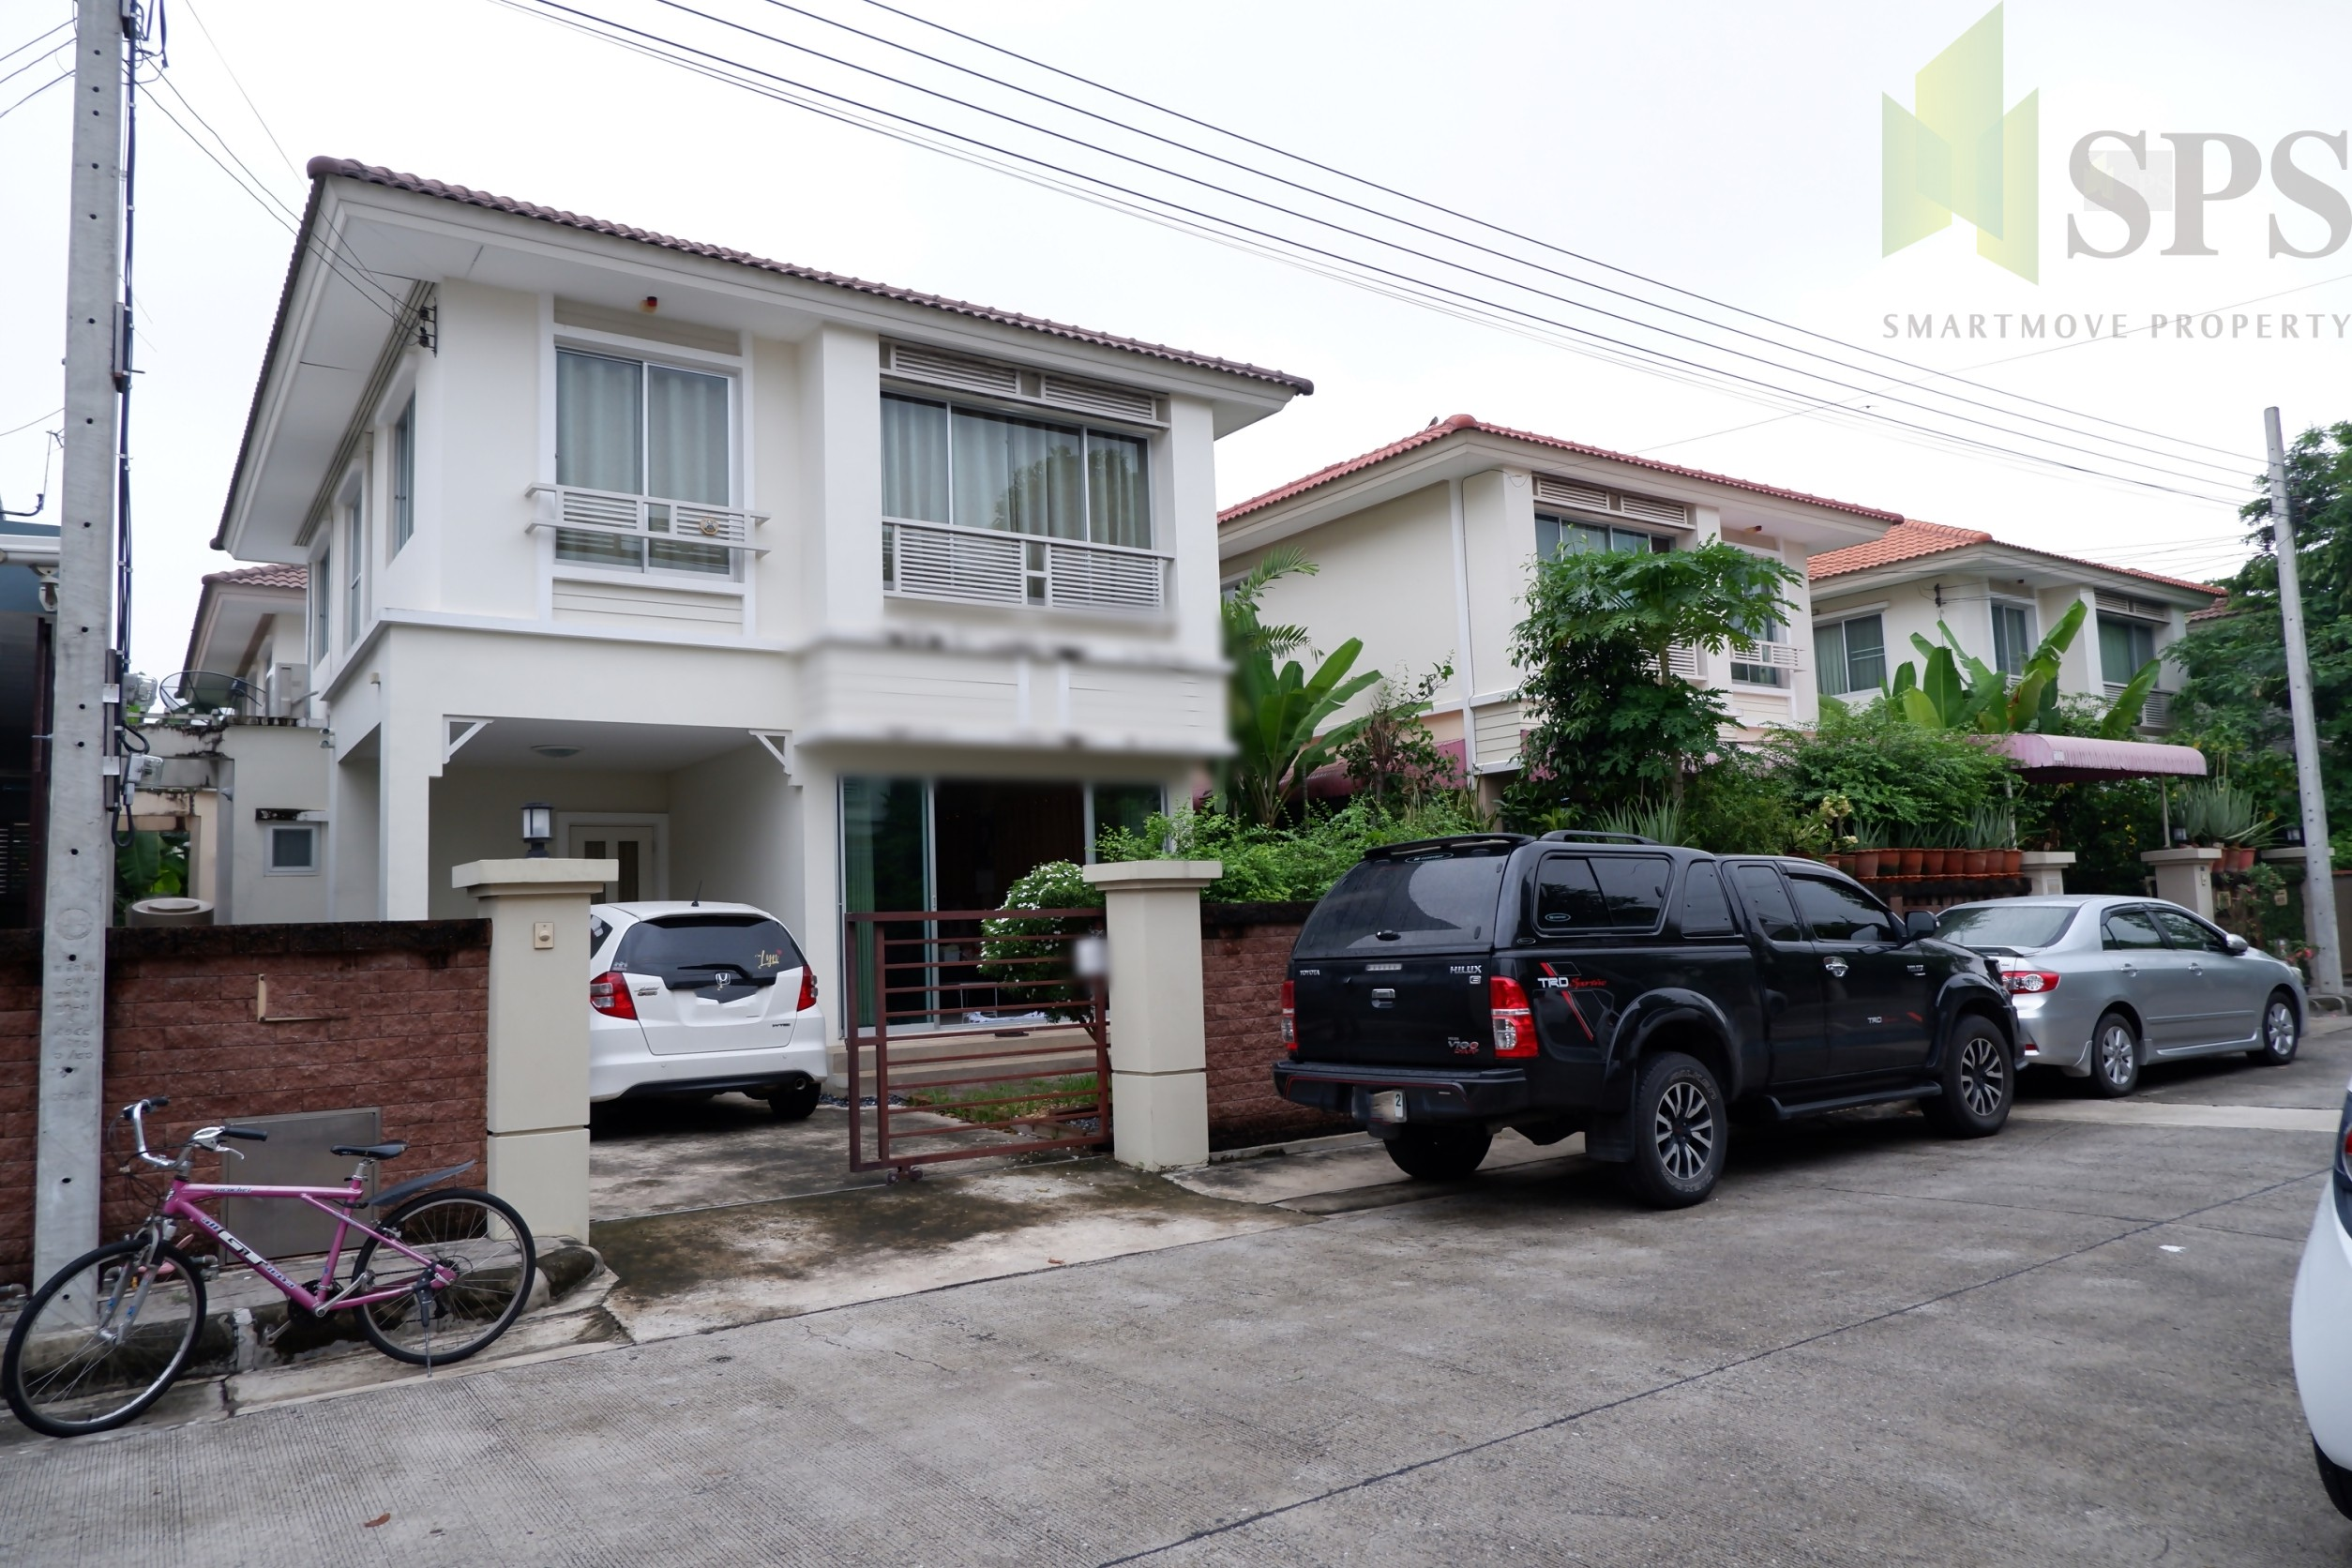 For Rent Single House 3 bedrooms Casa Ville Bangna Km 8 (Property ID : SPS-GH123)